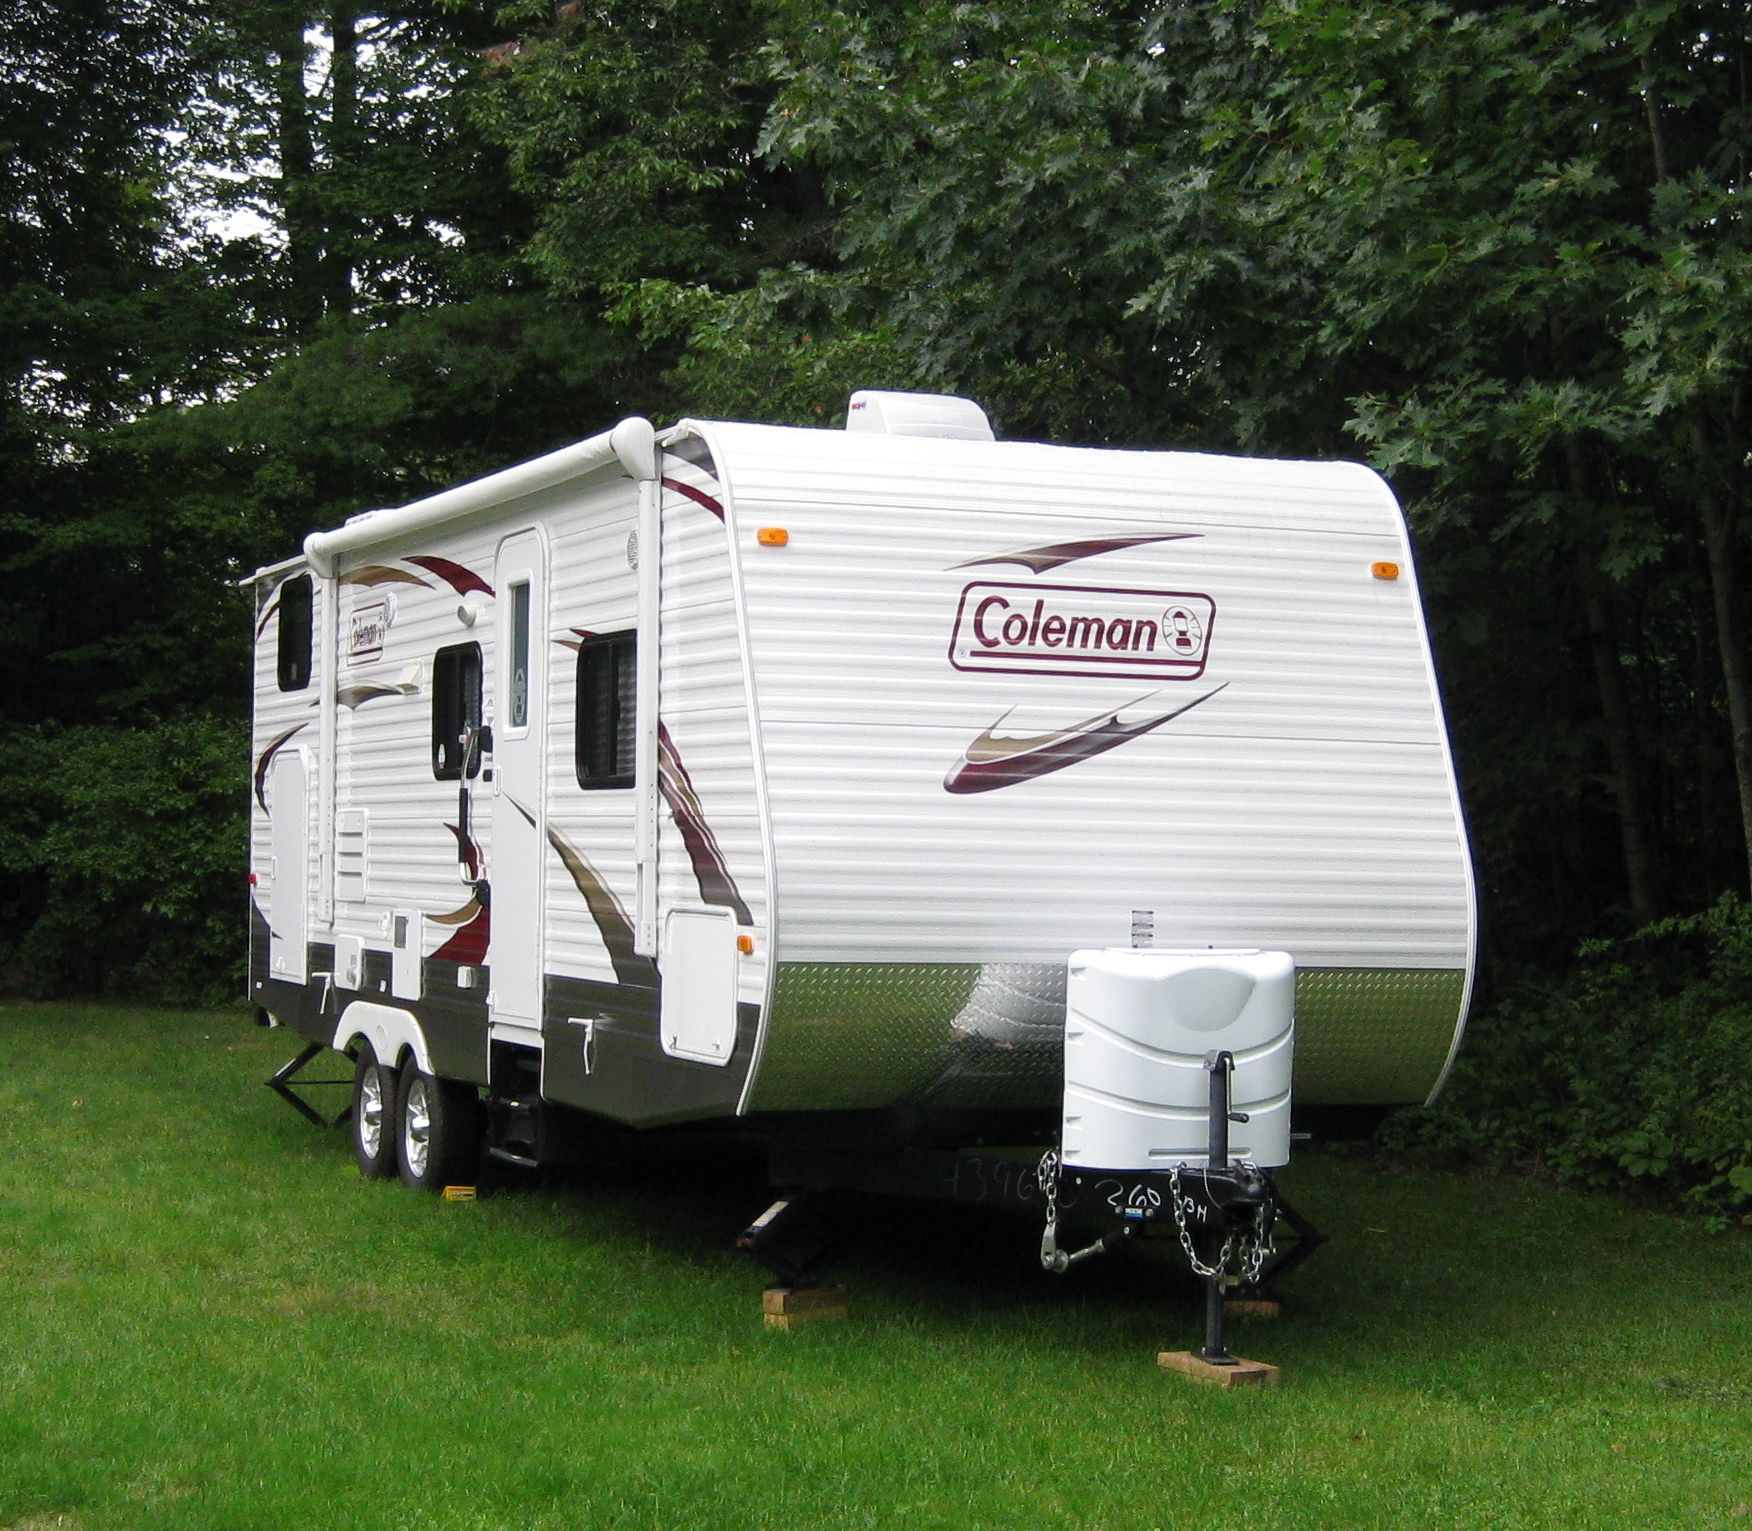 Travel Campers: Coleman Travel Trailer Model CT260BH